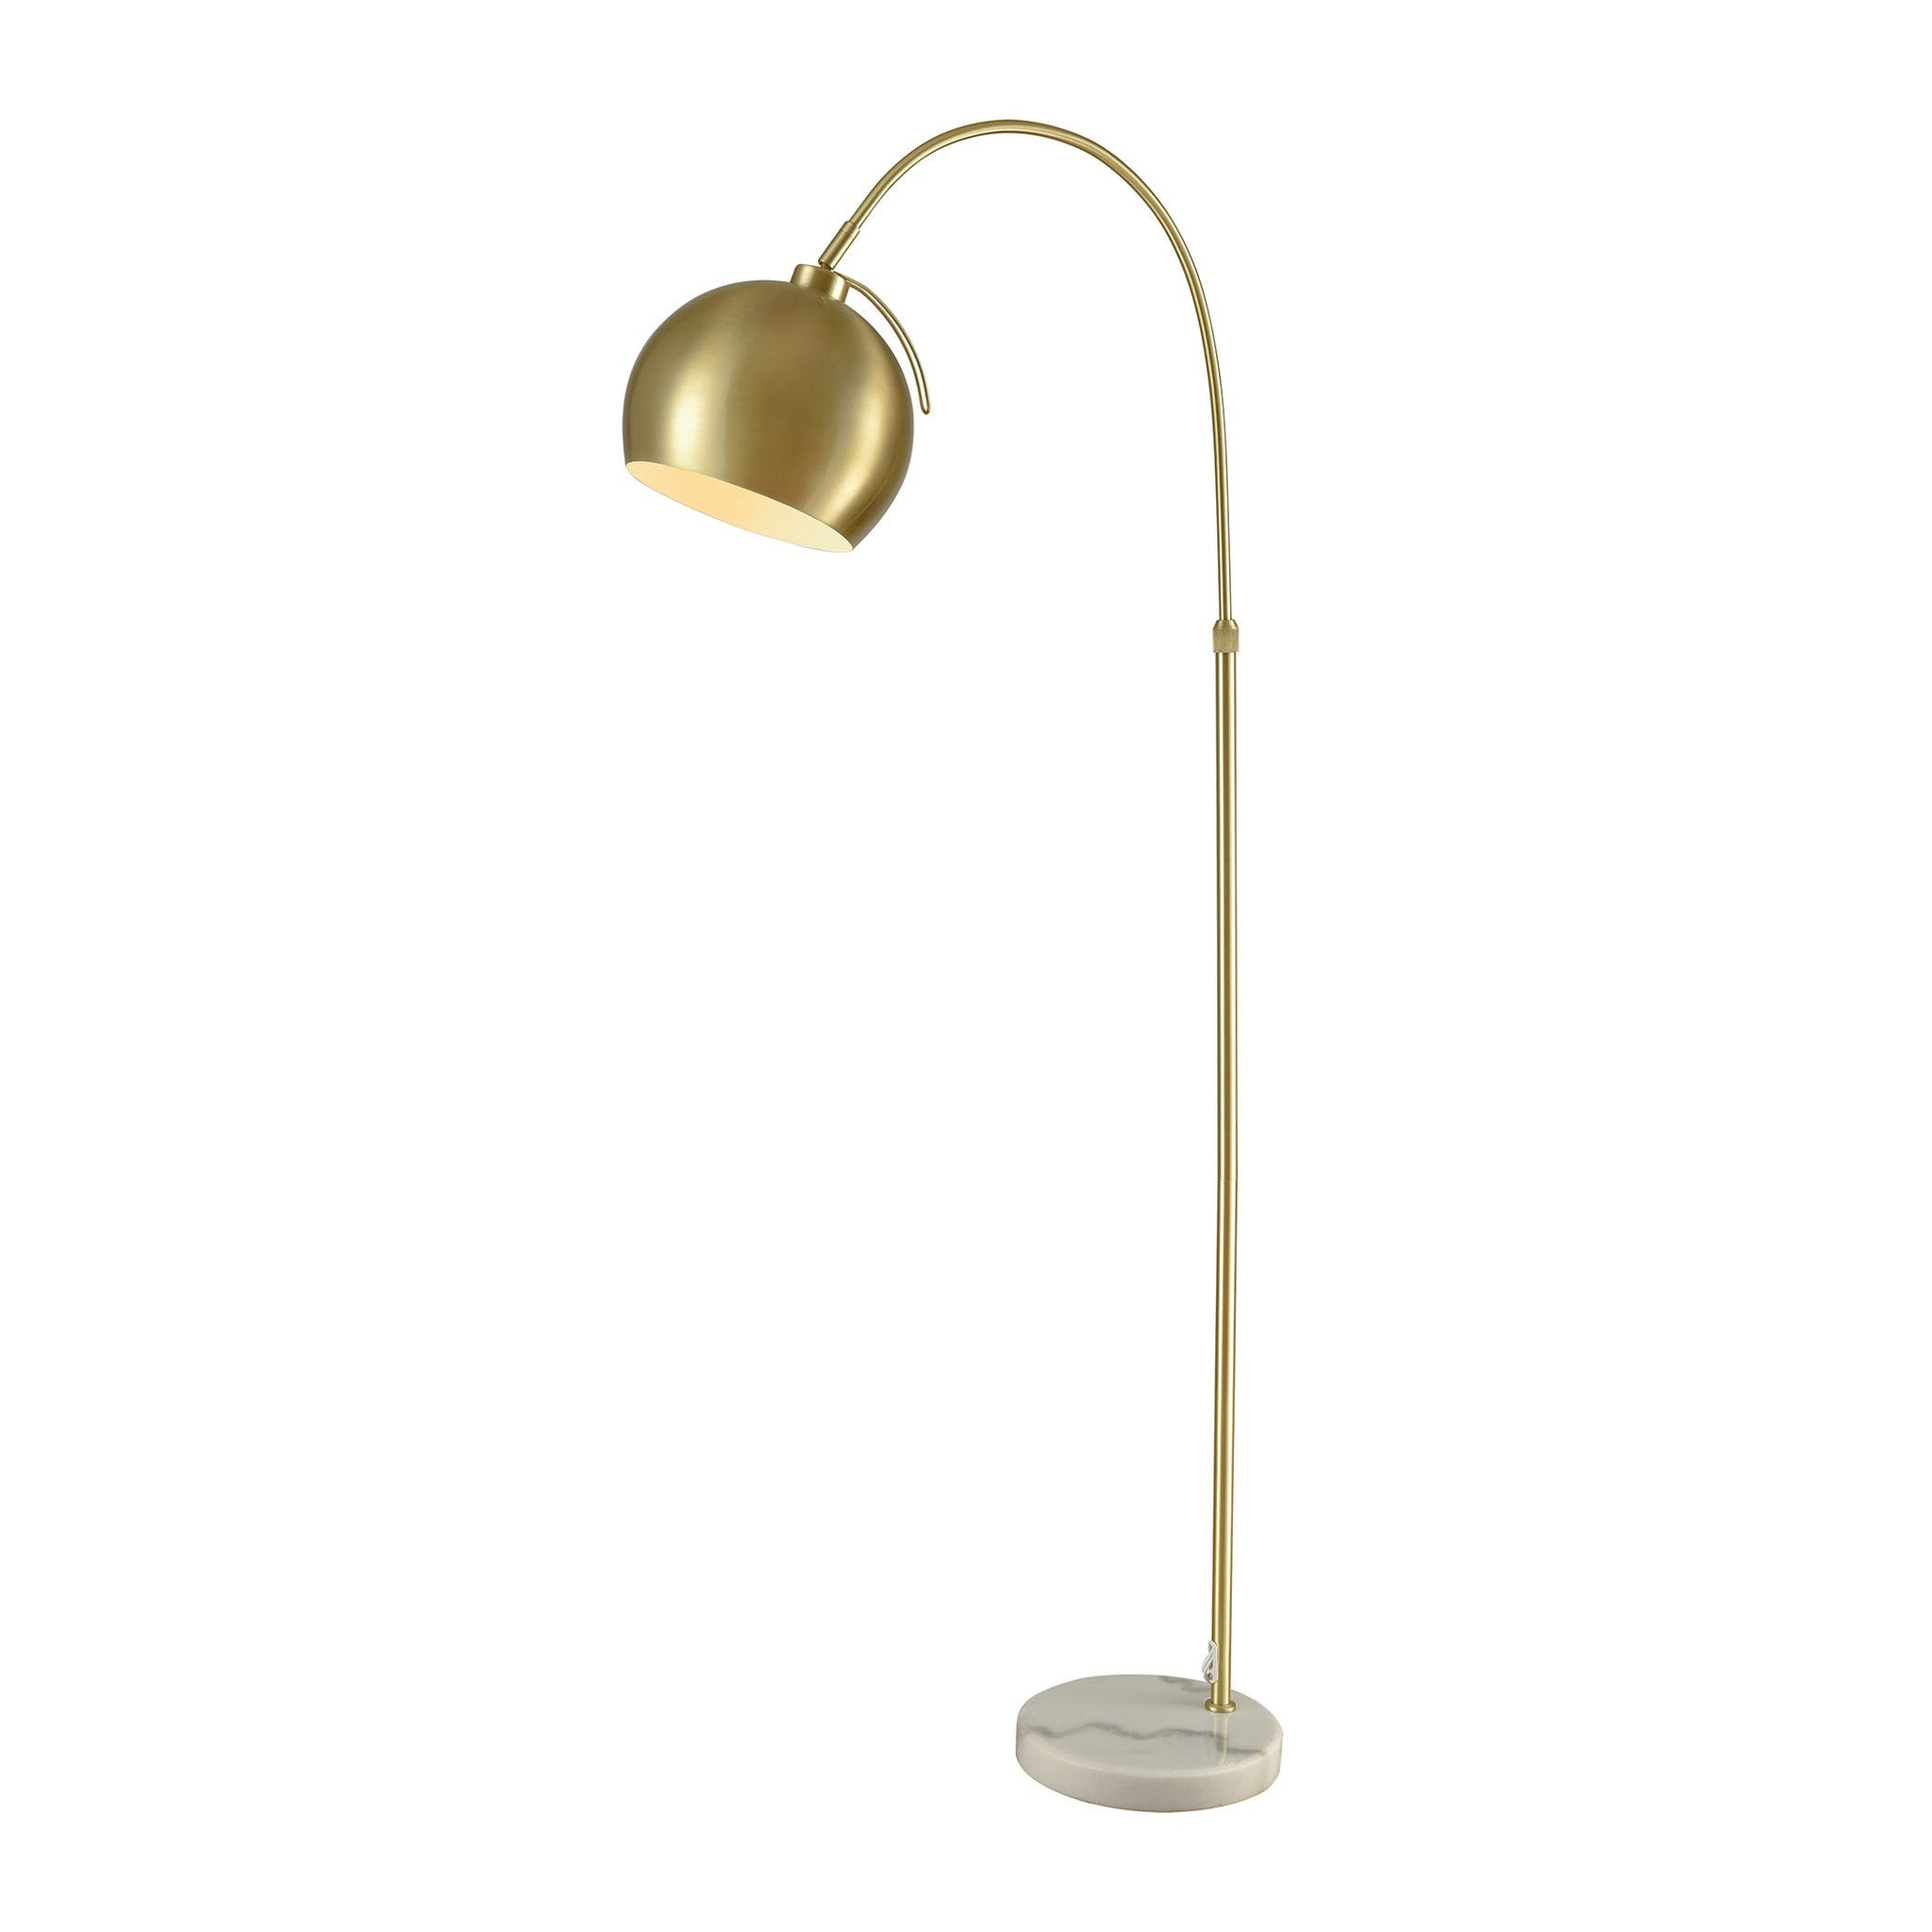 ikea grey modern uplighter lights full alone lamp online size light standing lamps bulb led reading gold white arstid buy floor with stand shelves and of